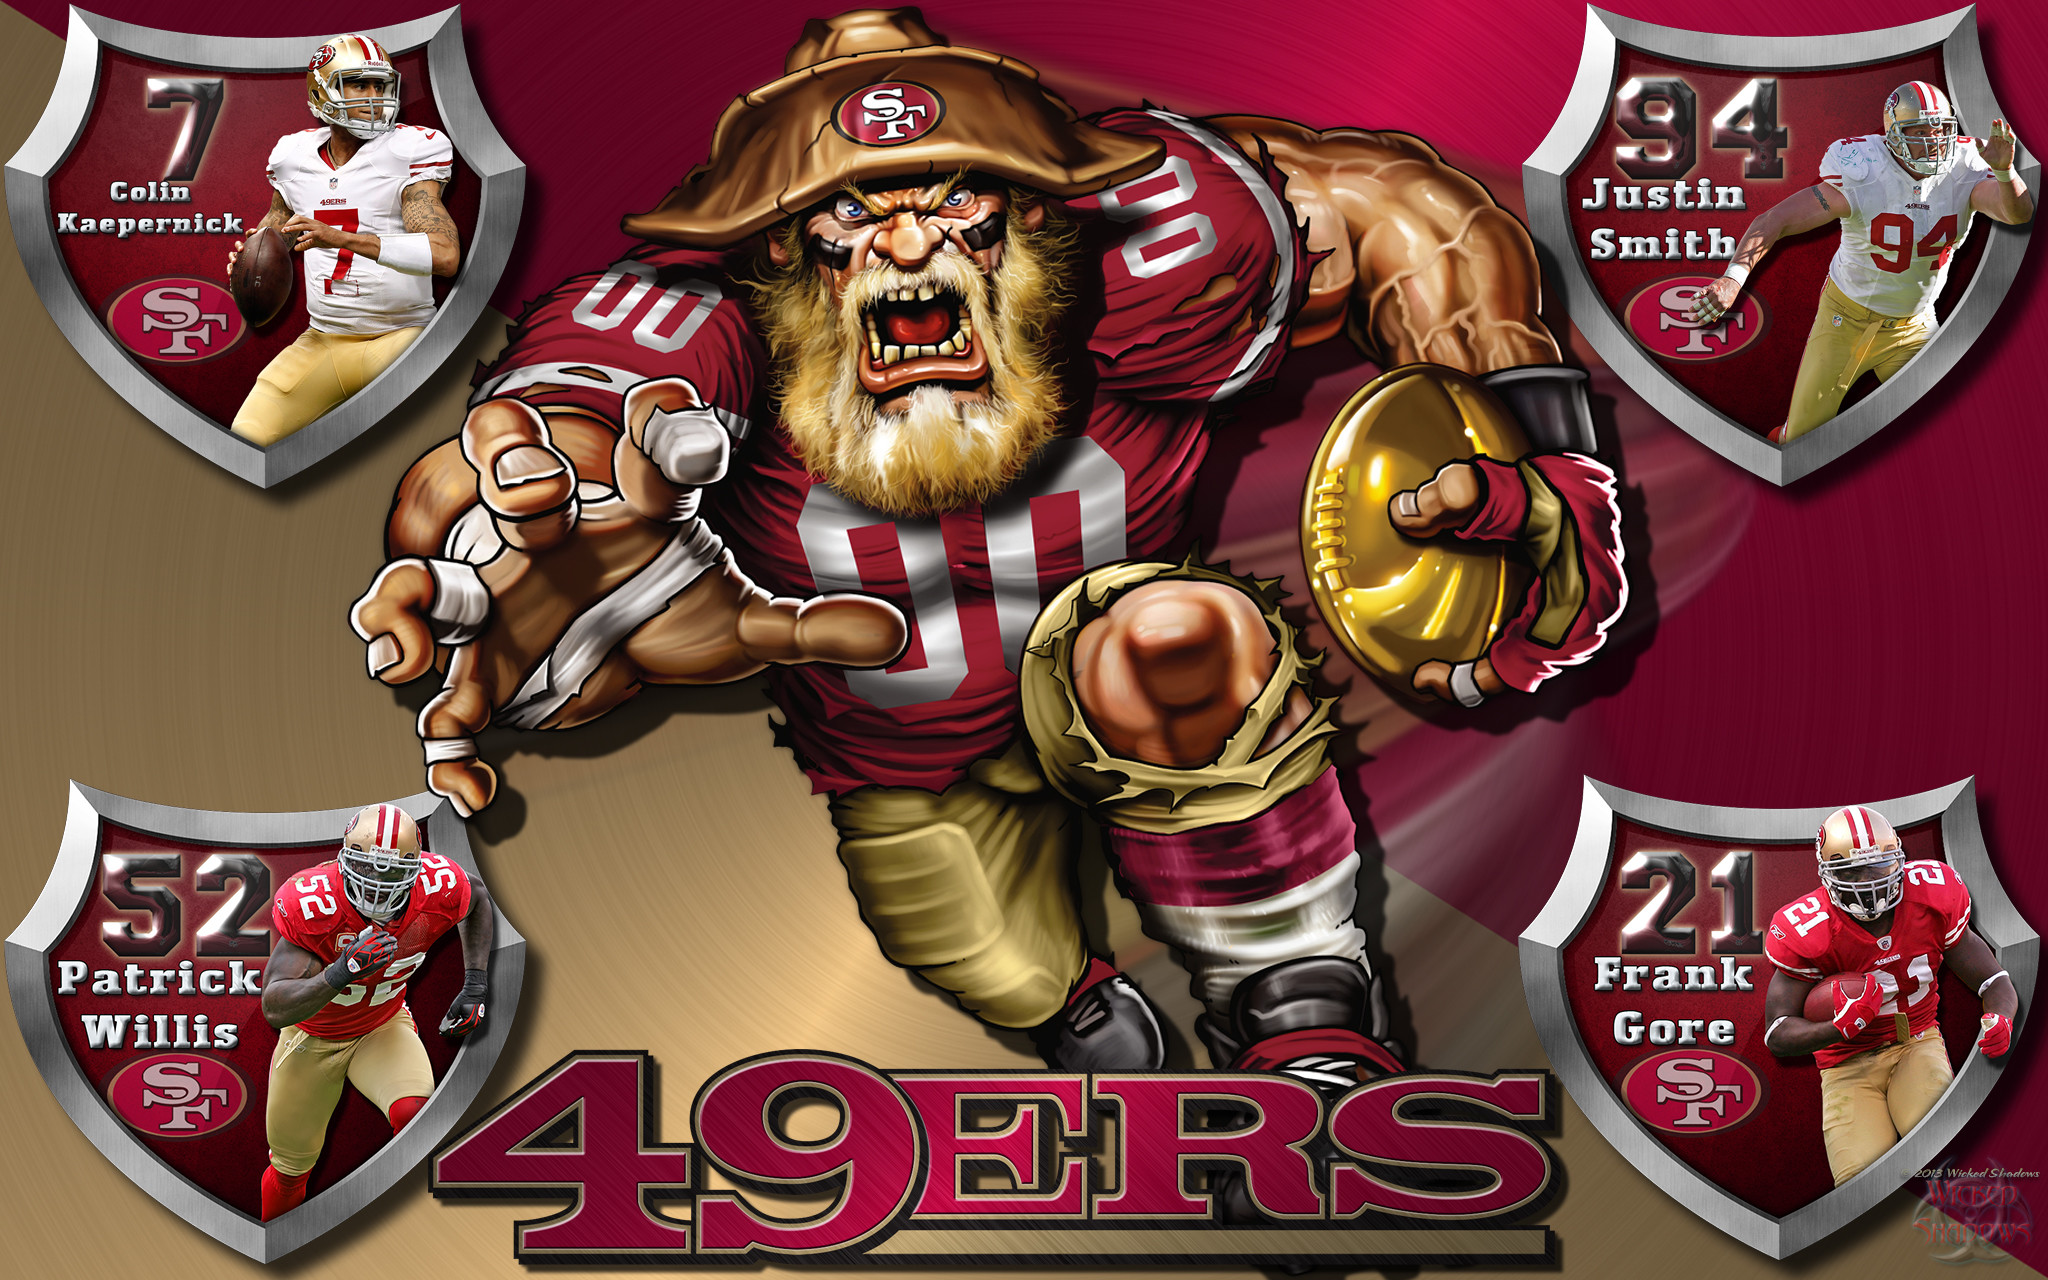 Wallpapers By Wicked Shadows: 49ers Crazy Logo Shield Players .